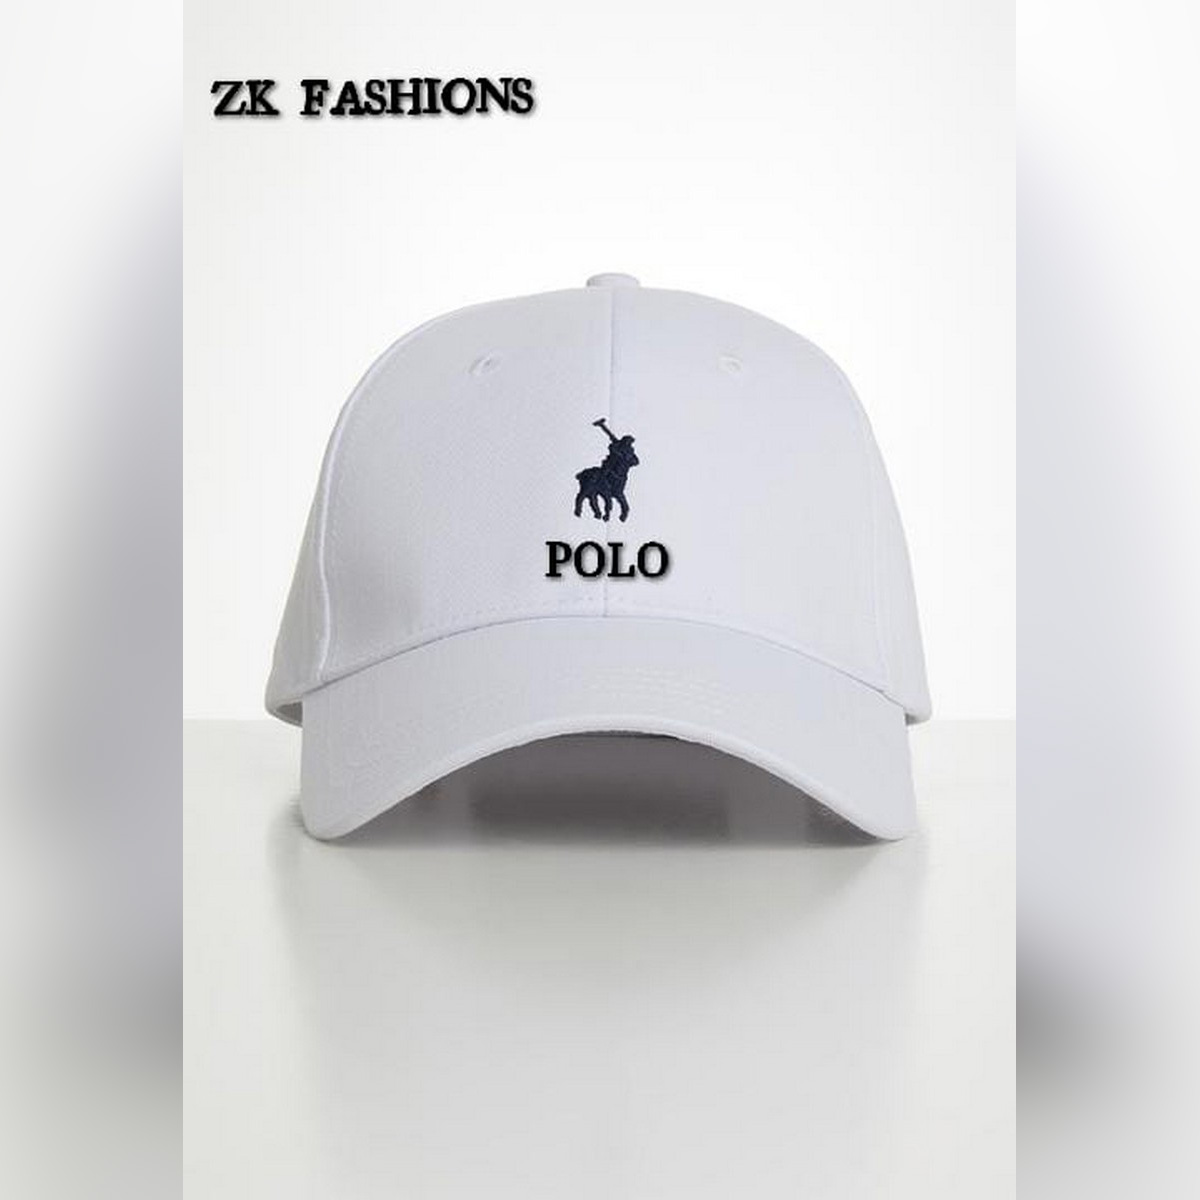 Casual Cap for men With Adjustable Buckle Sun Hats for Men Daily Use Caps Visor P  Baseball cap